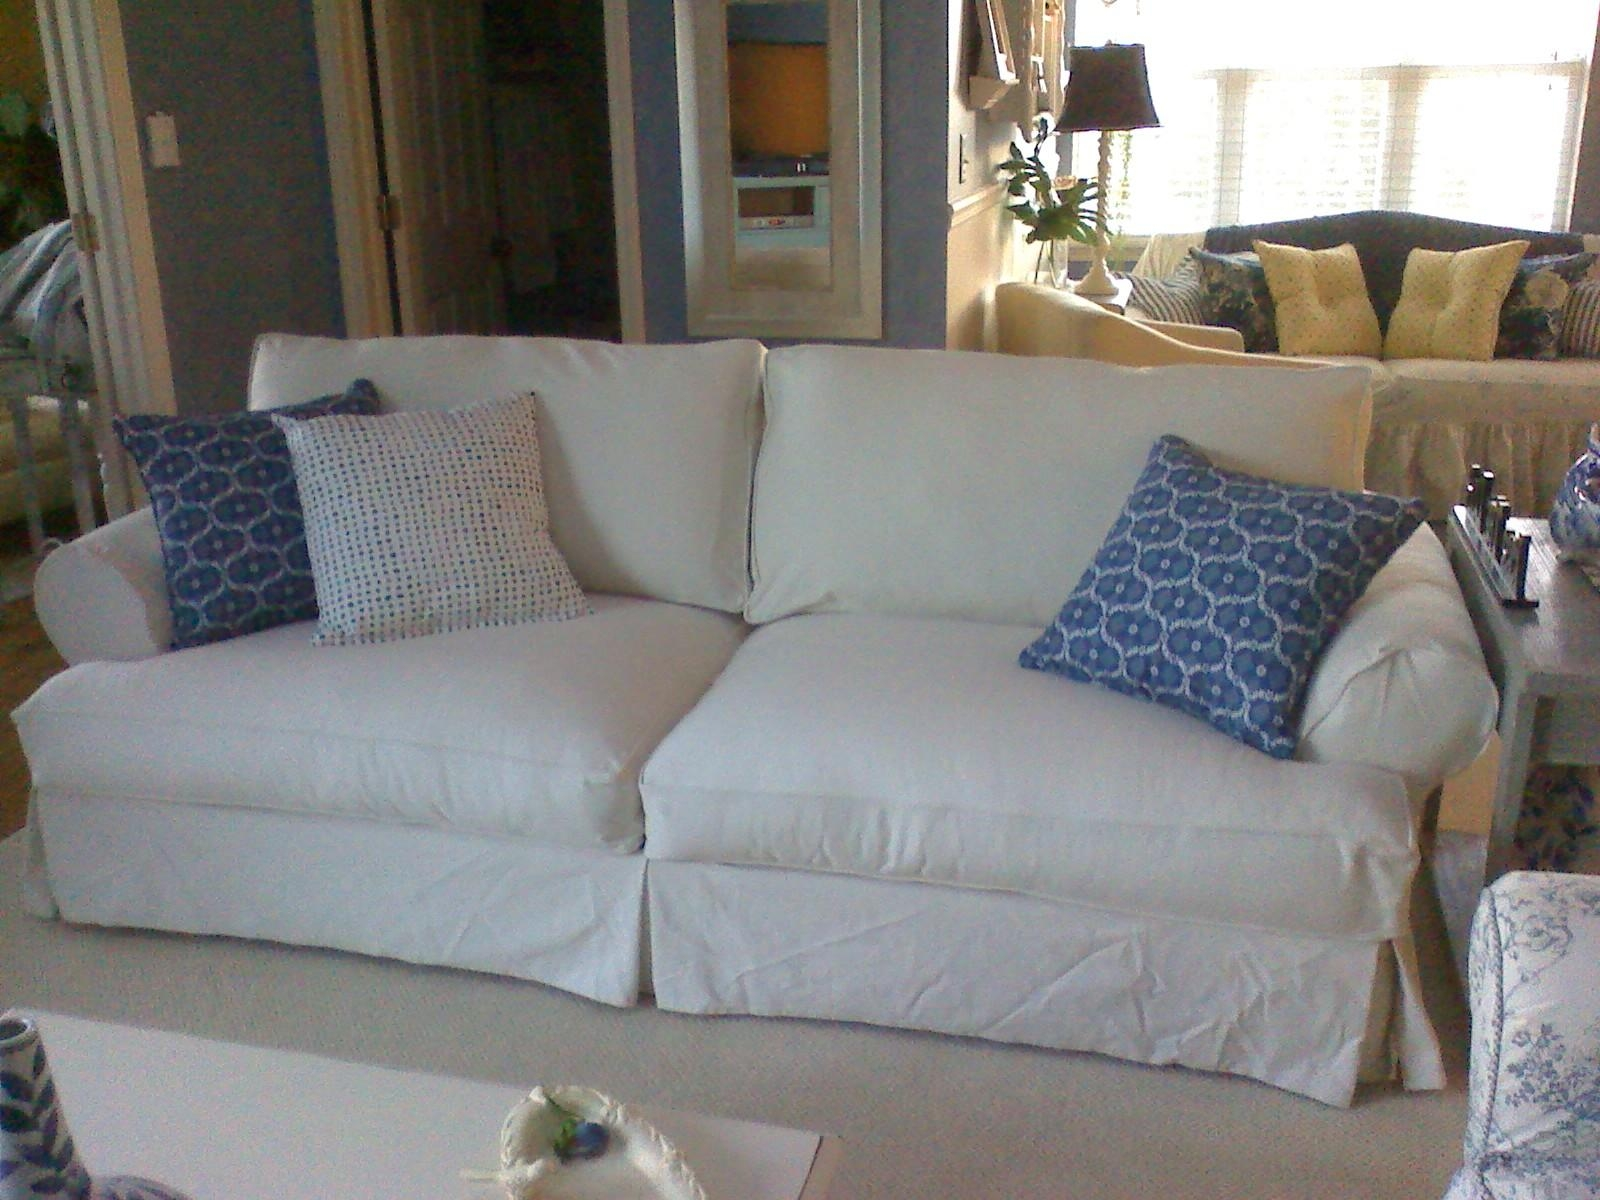 Replacement Slipcover Outlet  Replacement Slipcovers For Famous Inside Large Sofa Slipcovers (Image 9 of 23)